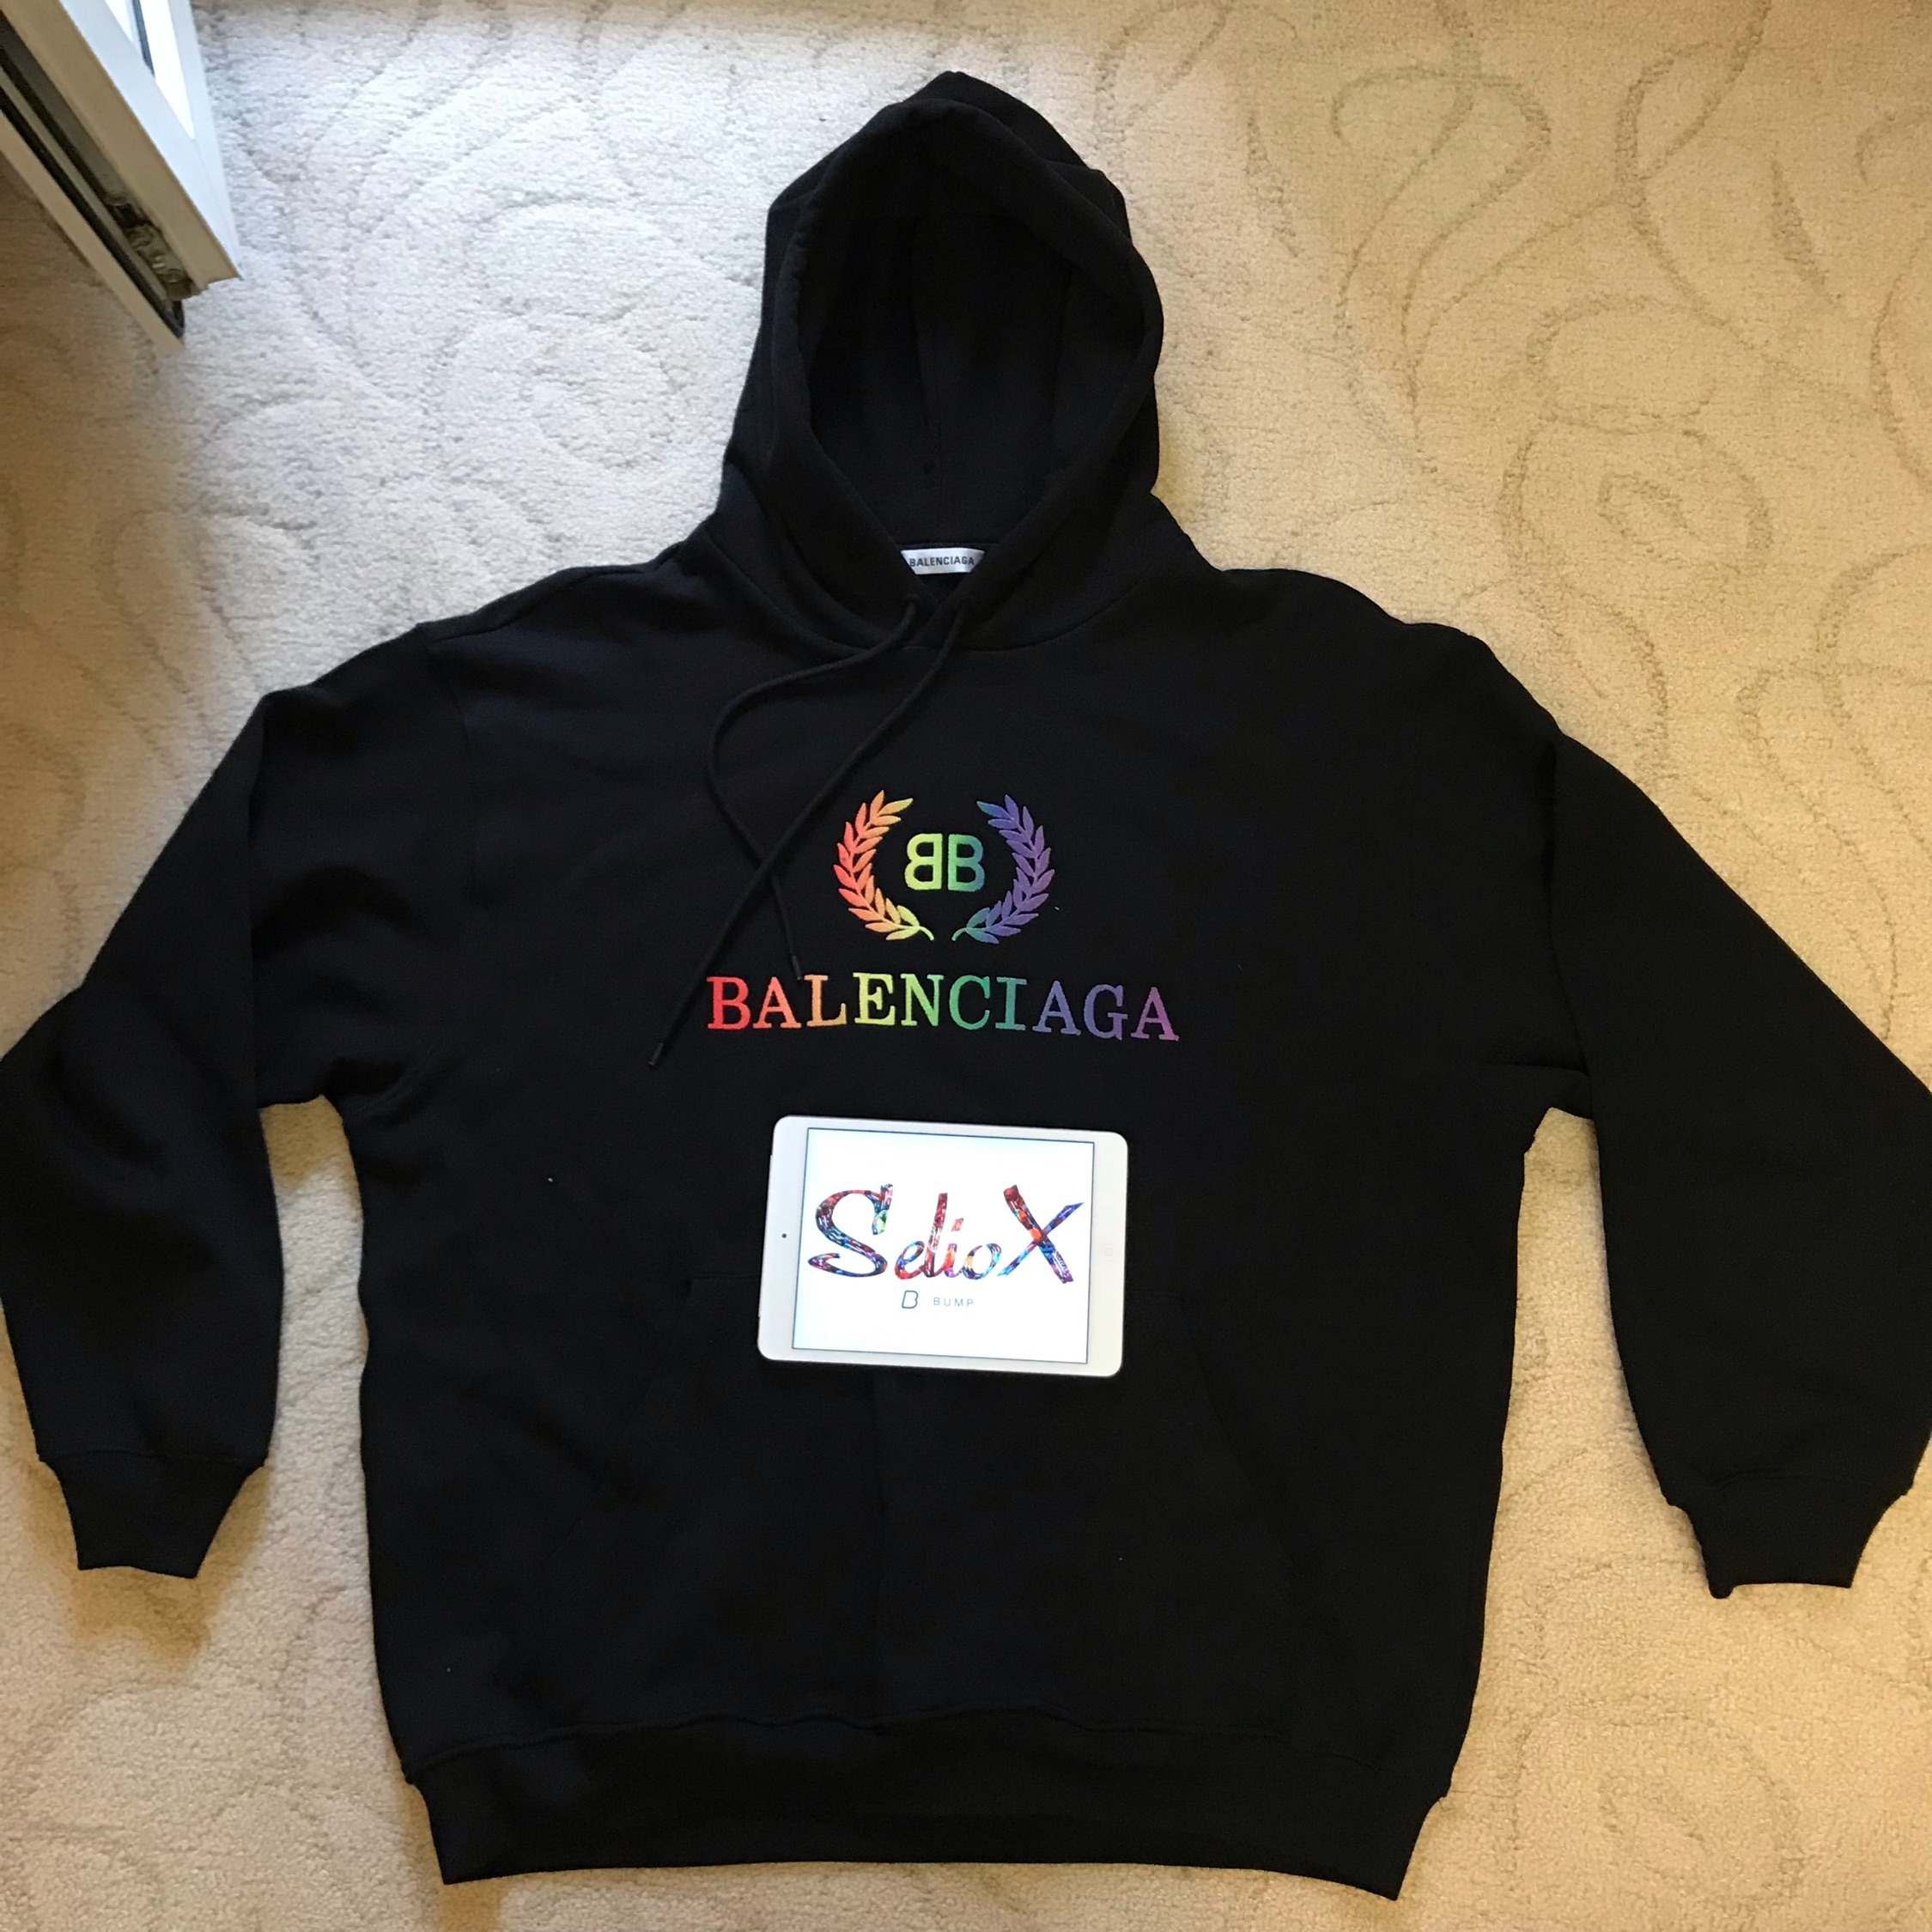 outlet online retail prices performance sportswear Balenciaga Rainbow Hoodie Size M Fit L (Oversize)